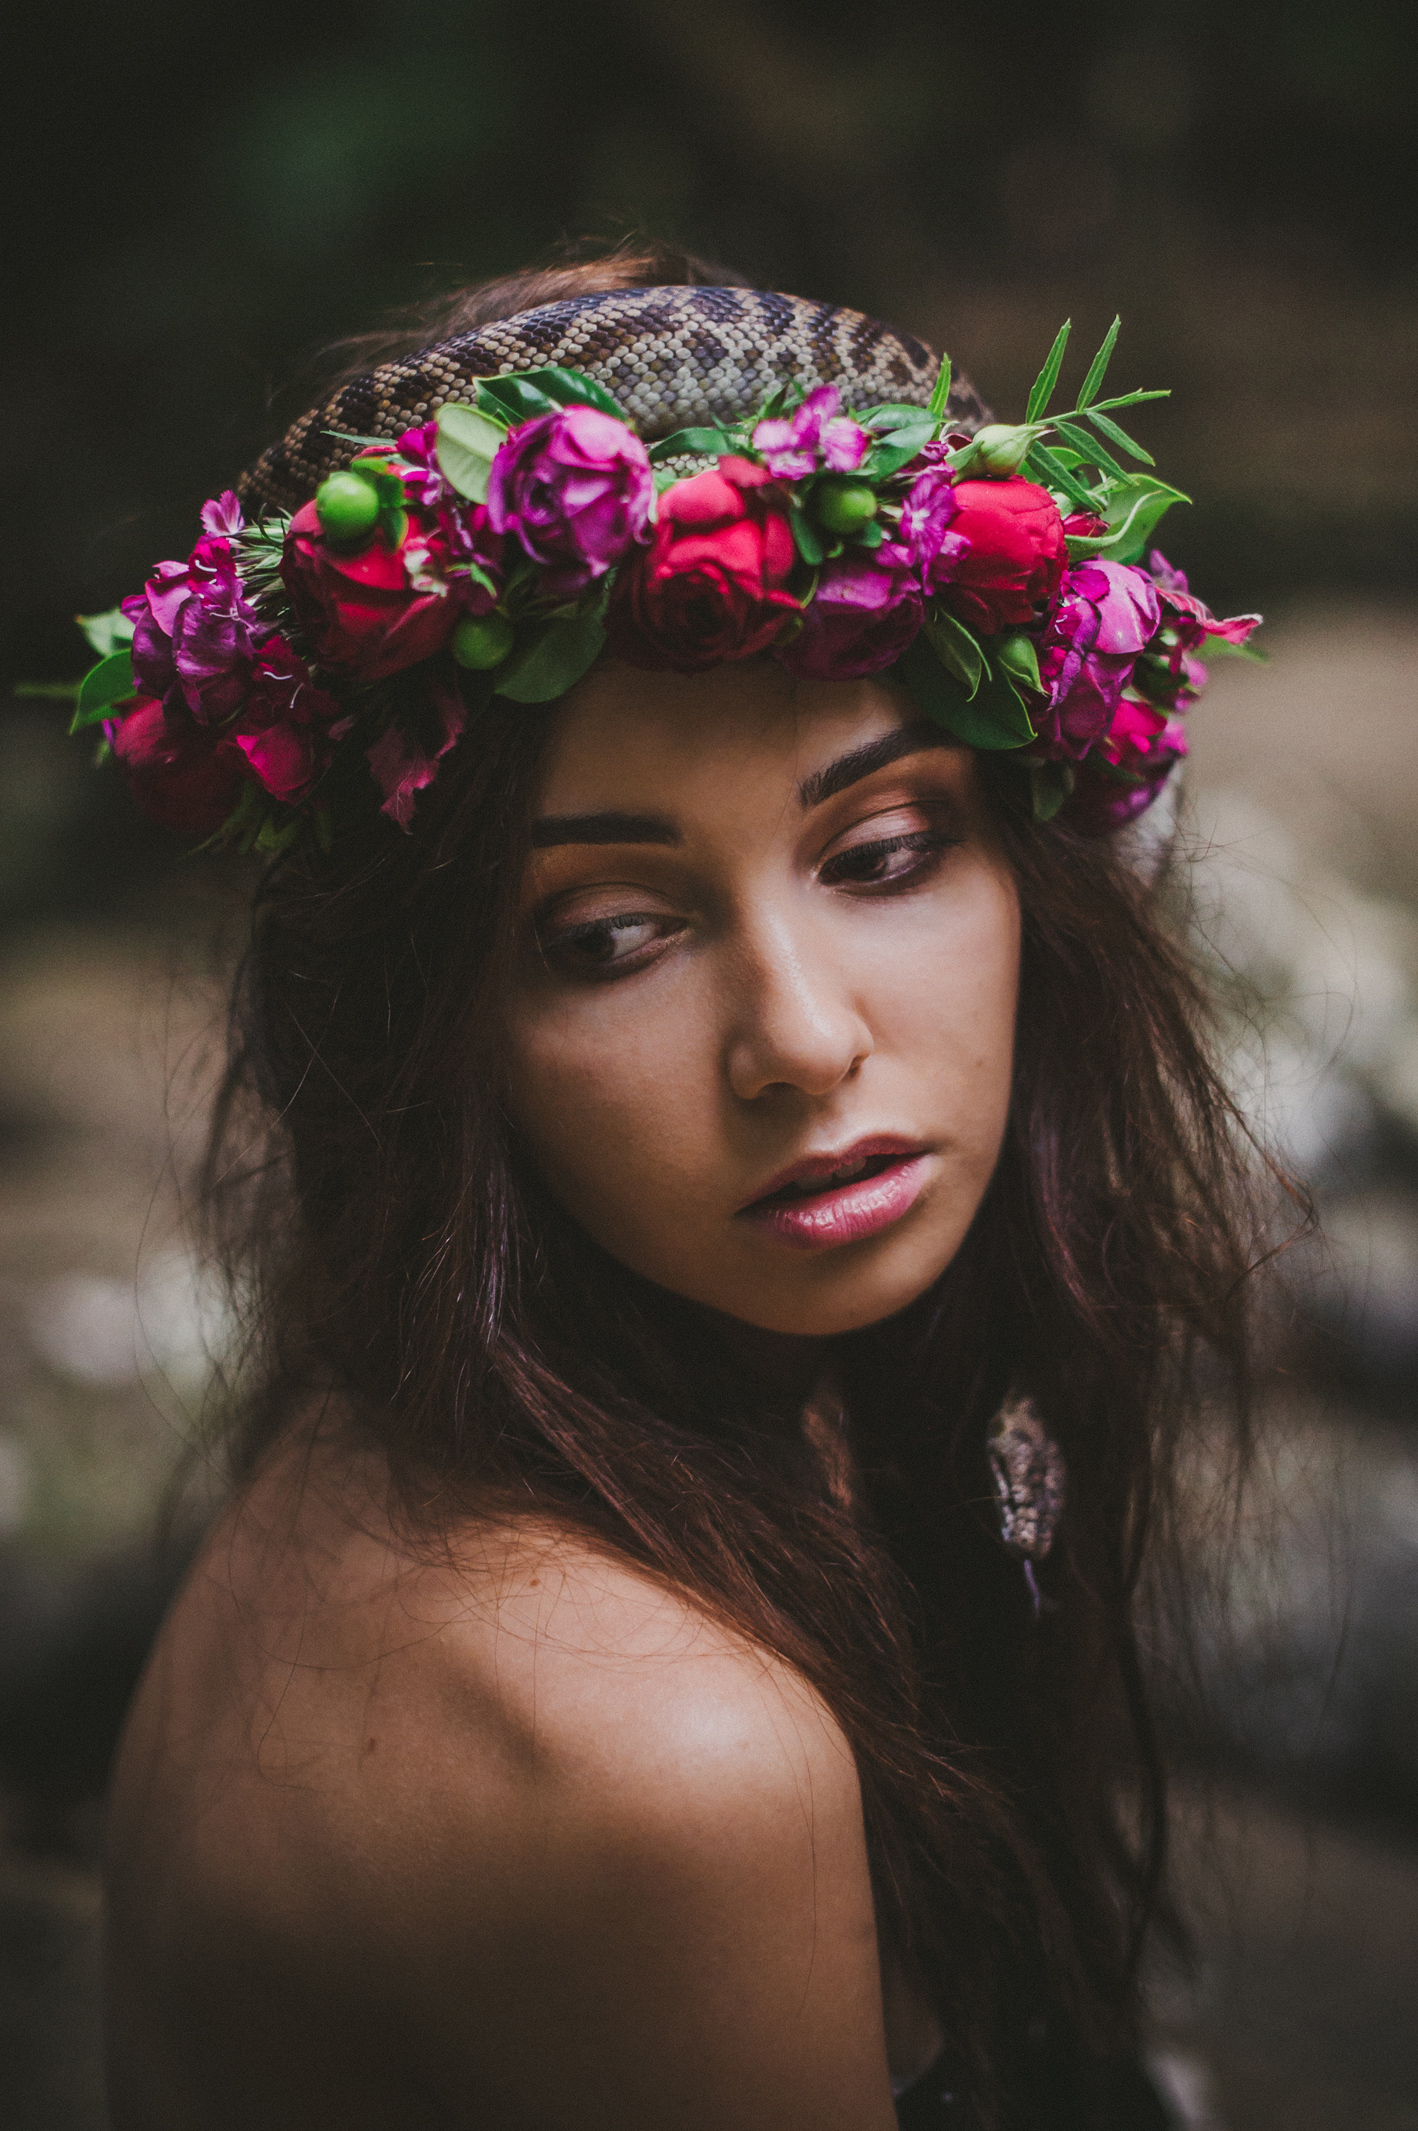 014-python-flowers_crown-of-eden_sophie-baker-photography